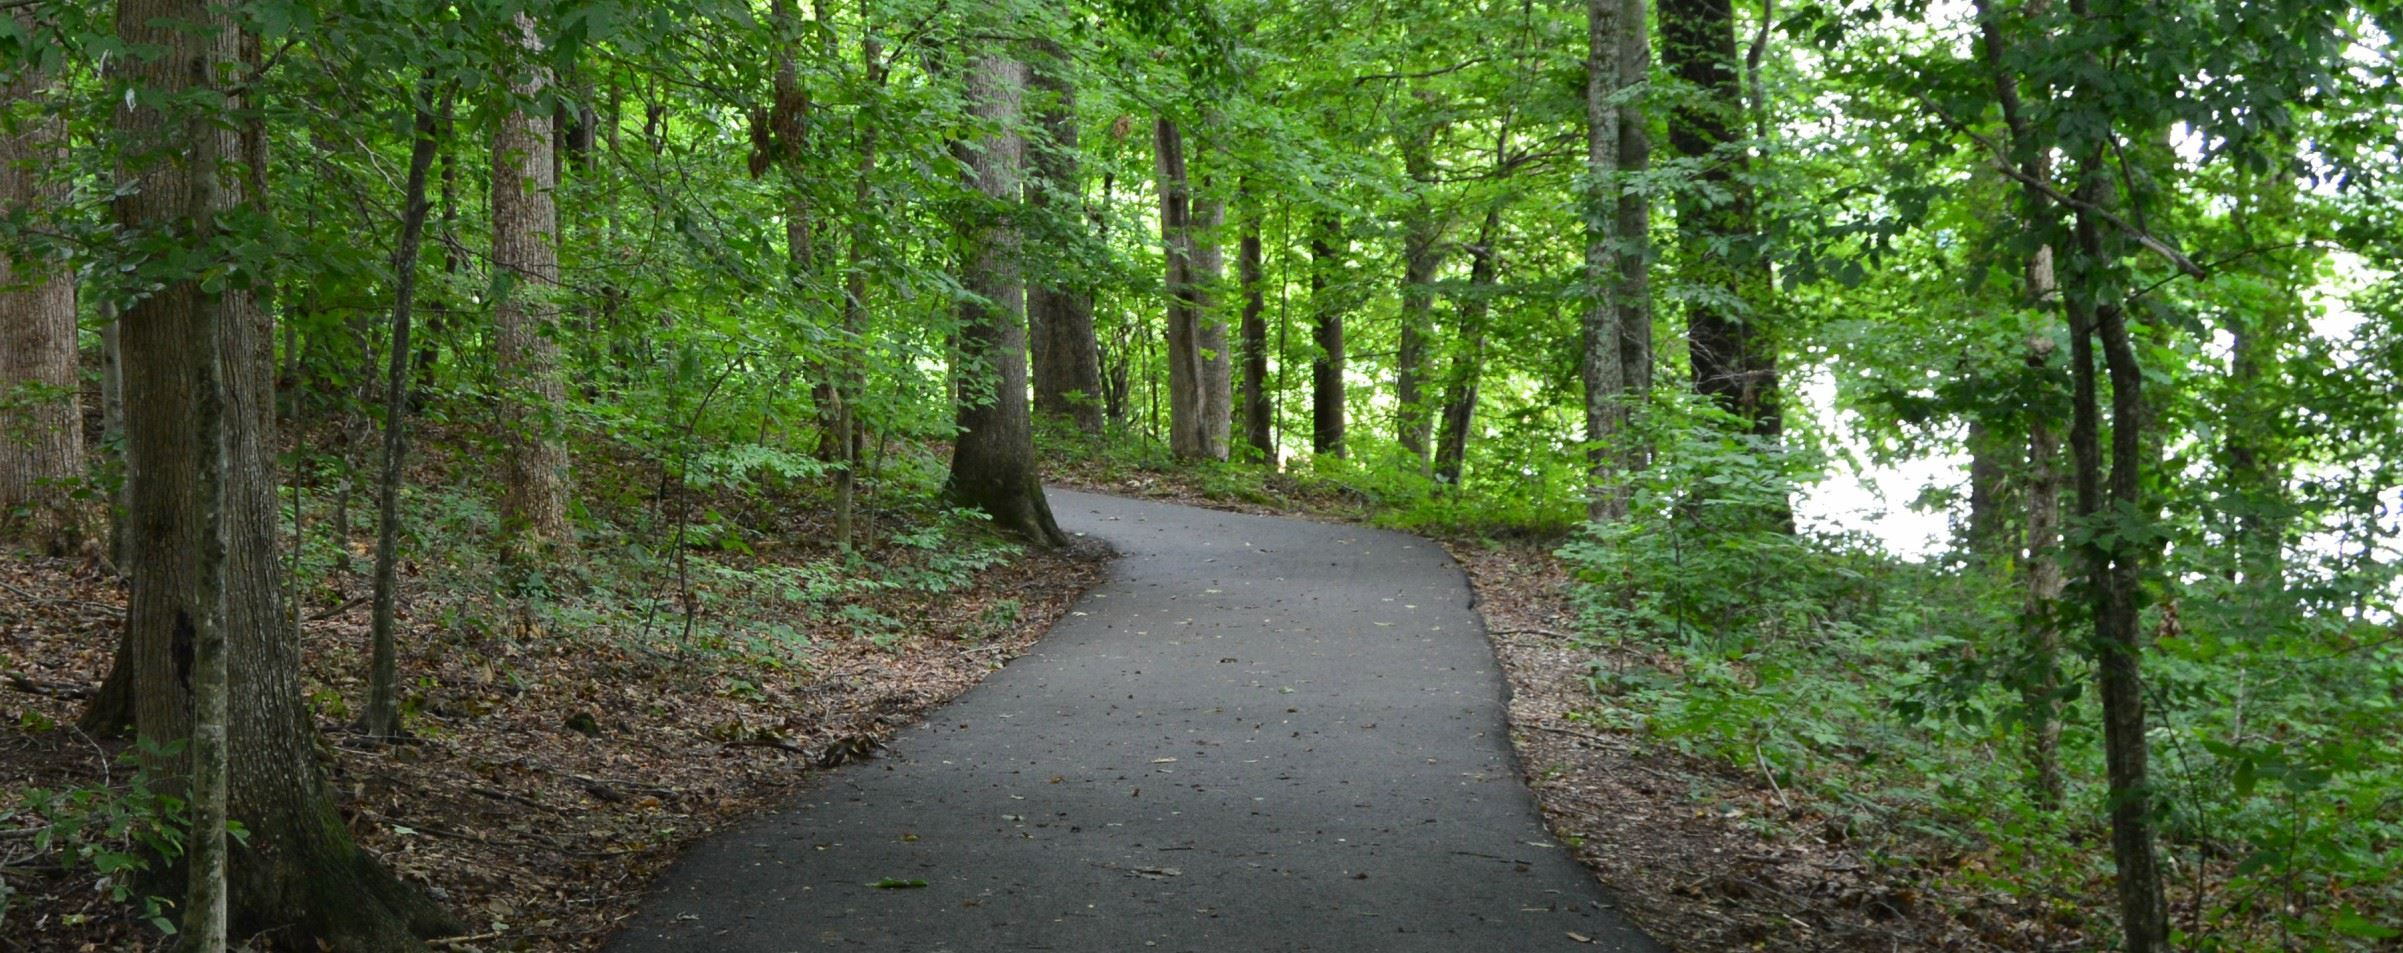 Cane Creek Park Trail